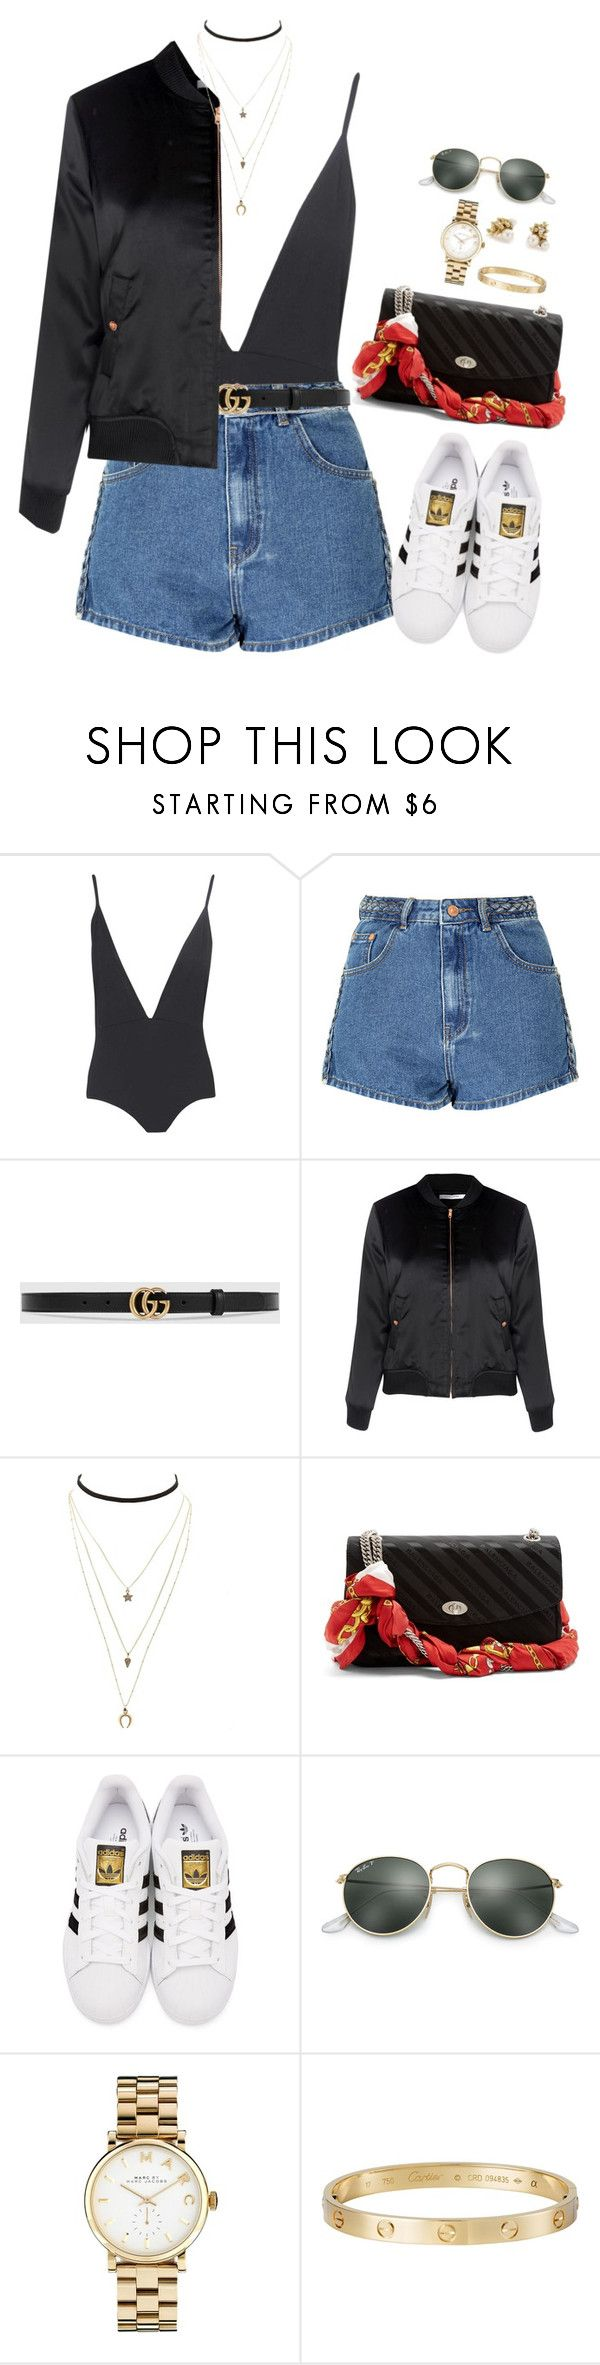 """Outfit"" by caa123 ❤ liked on Polyvore featuring Boohoo, Glamorous, Gucci, Charlotte Russe, Balenciaga, adidas Originals, Ray-Ban, Marc by Marc Jacobs, Cartier and Ruth Tomlinson"